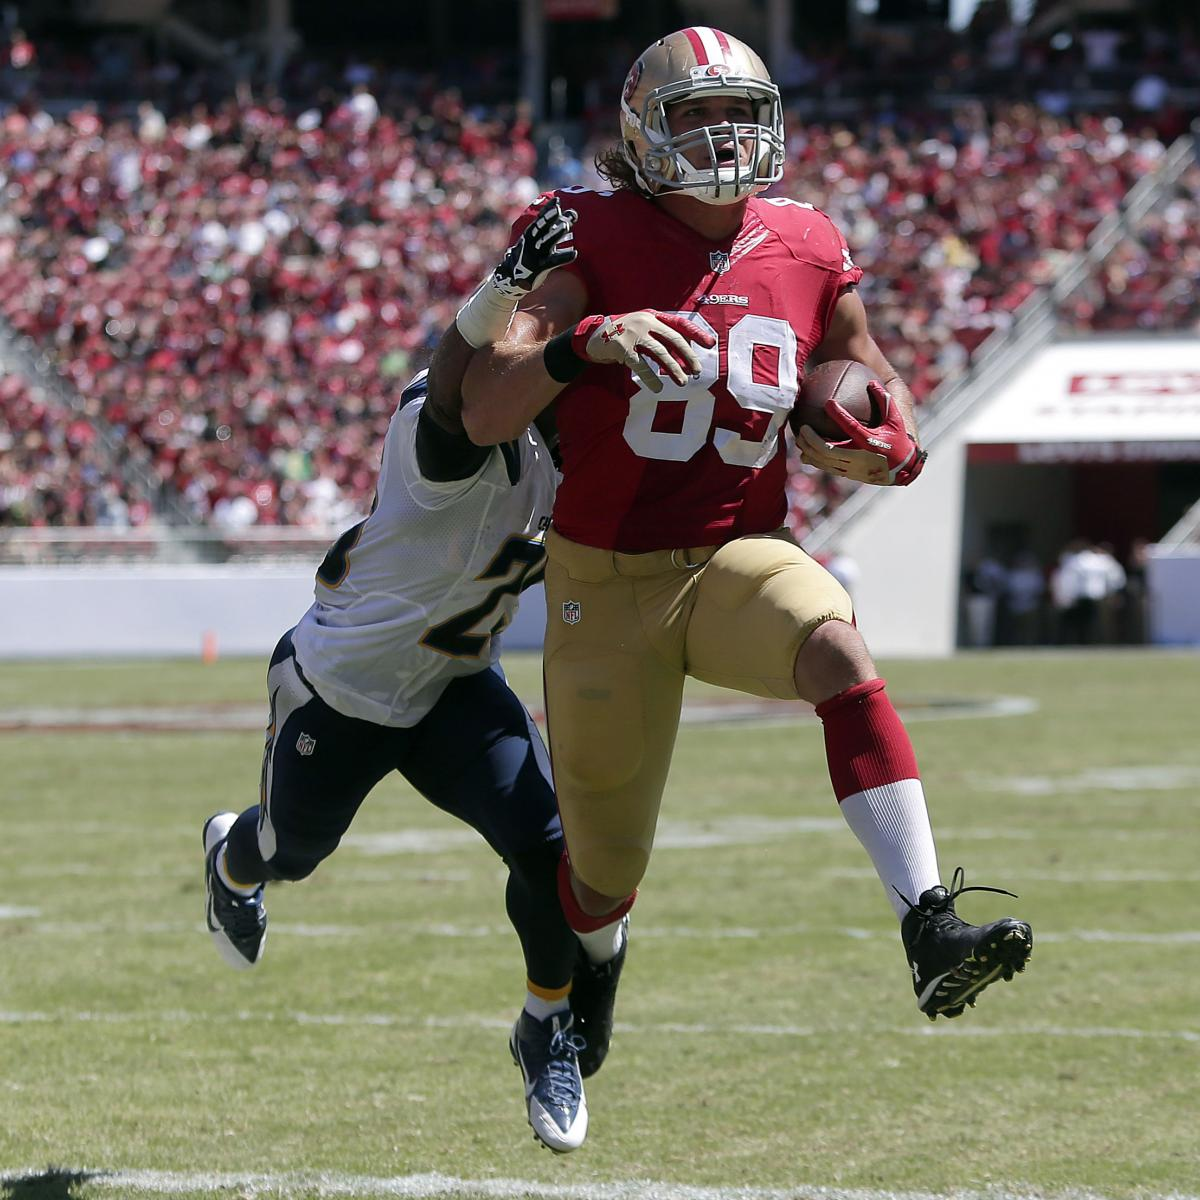 San Diego Chargers Football Score: San Diego Chargers Vs. San Francisco 49ers: Live Score And